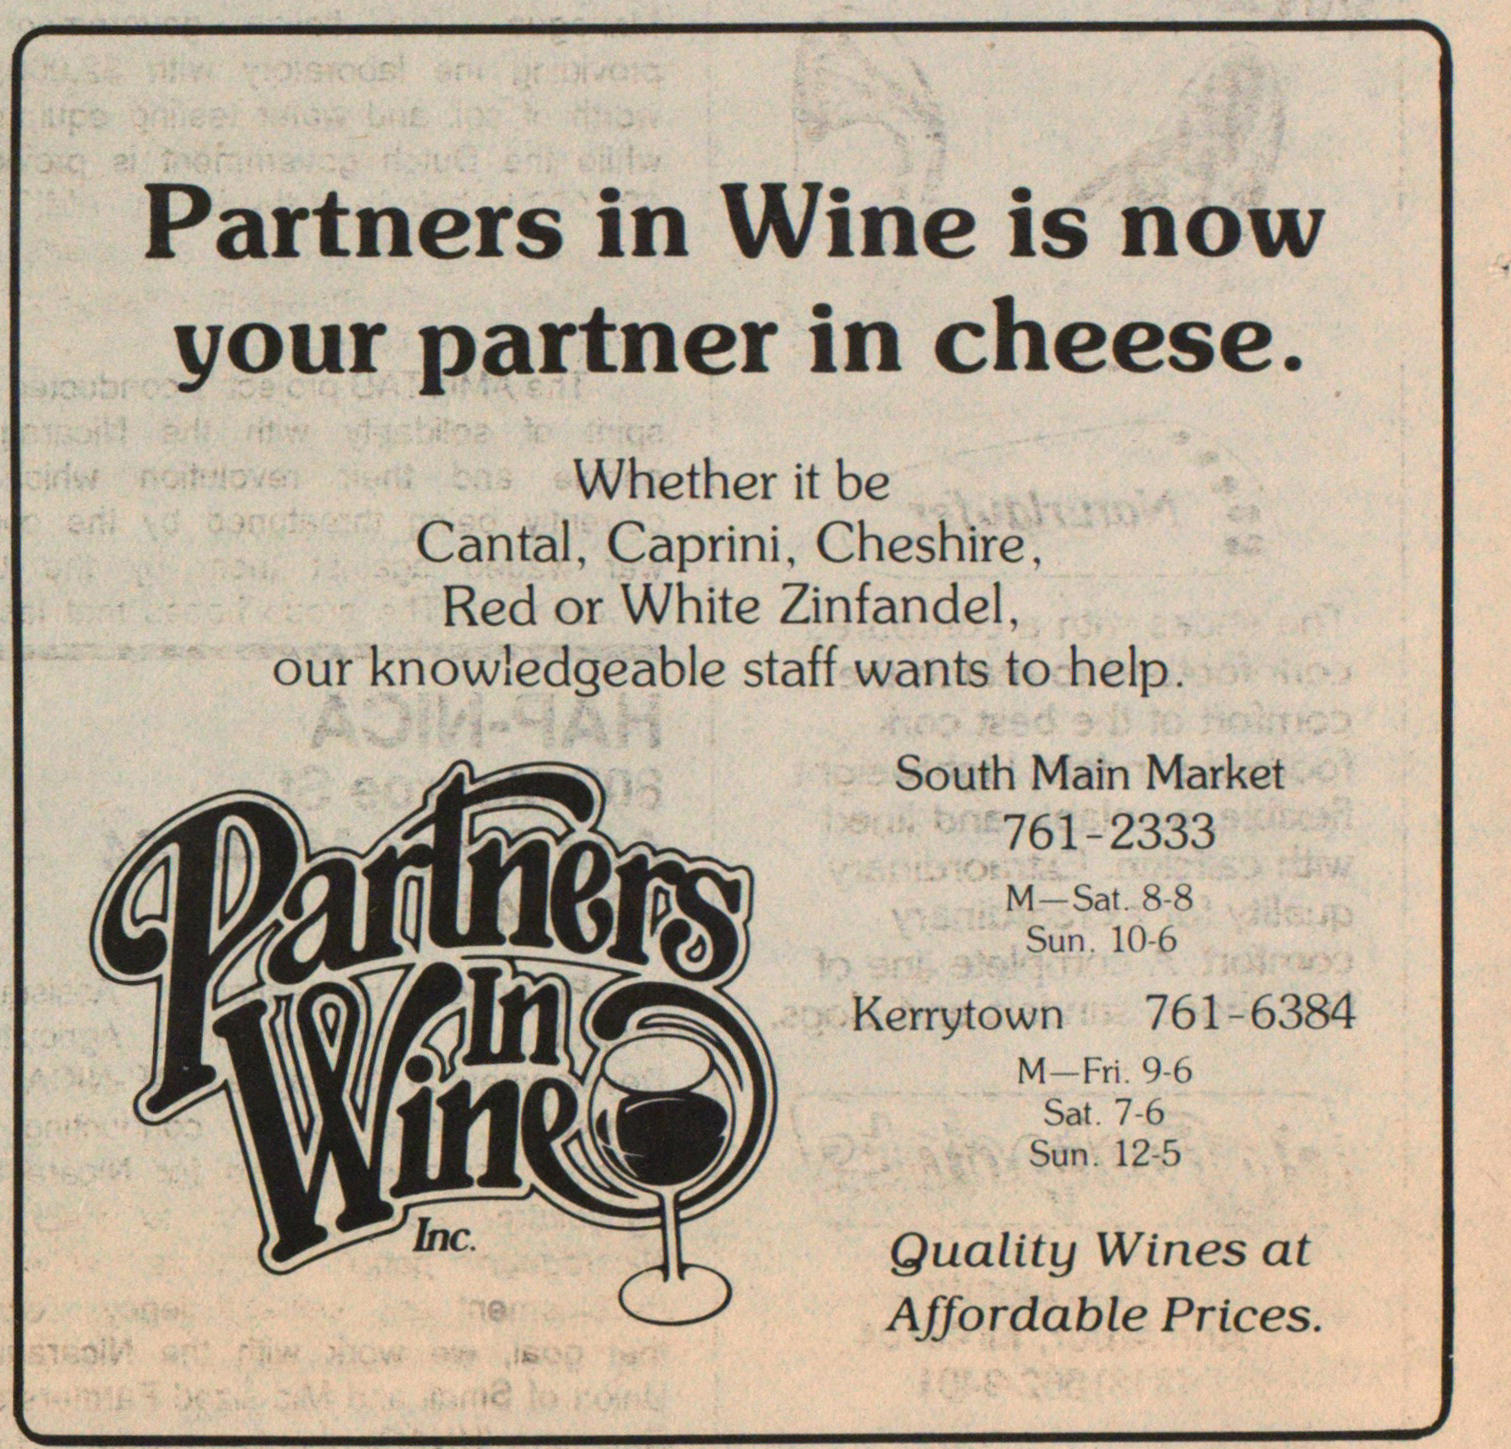 Partners In Wine Inc. image